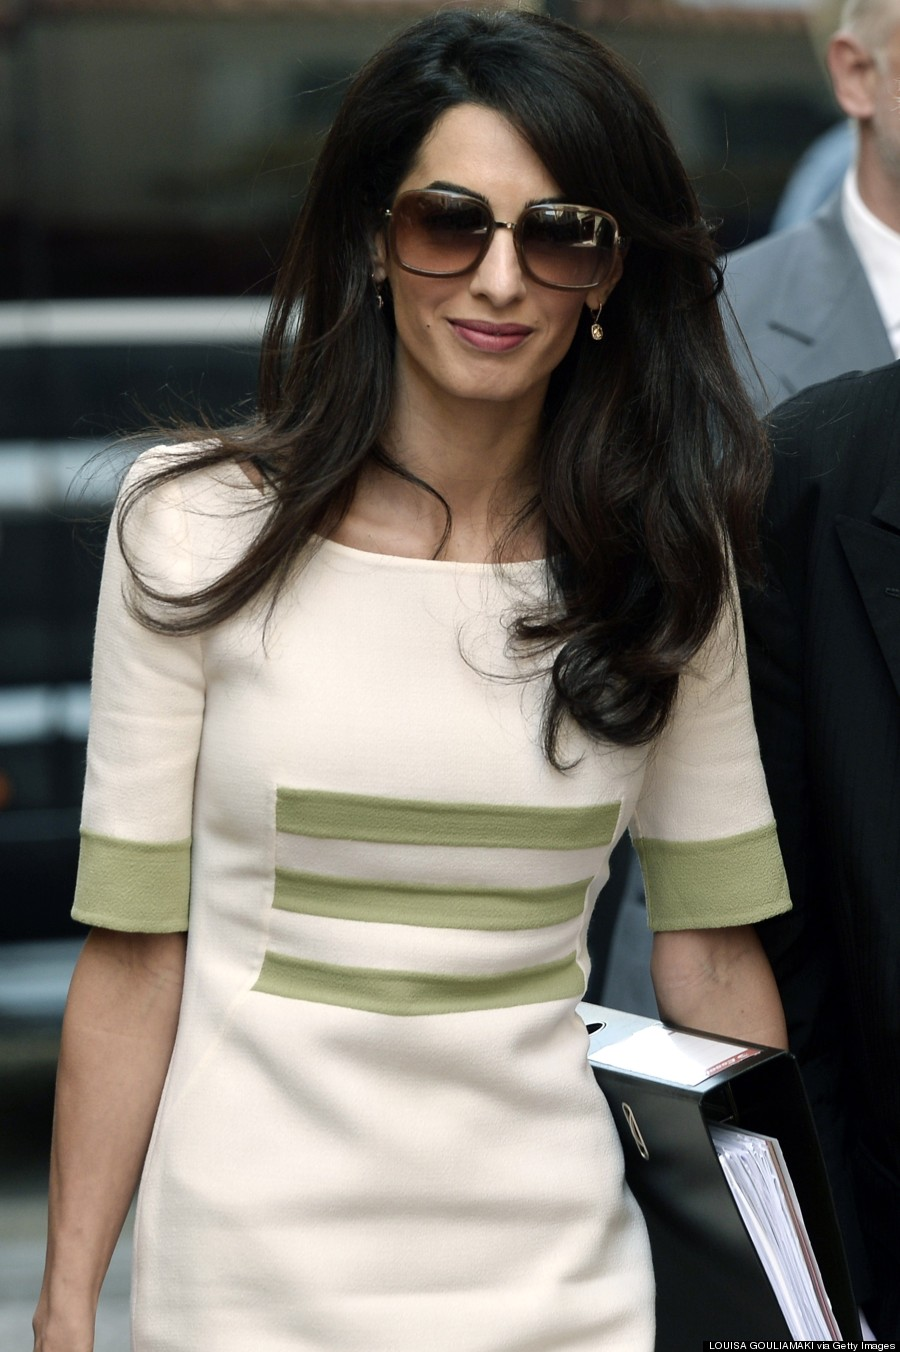 Amal Clooney Goes Back To Work In Chic Outfits